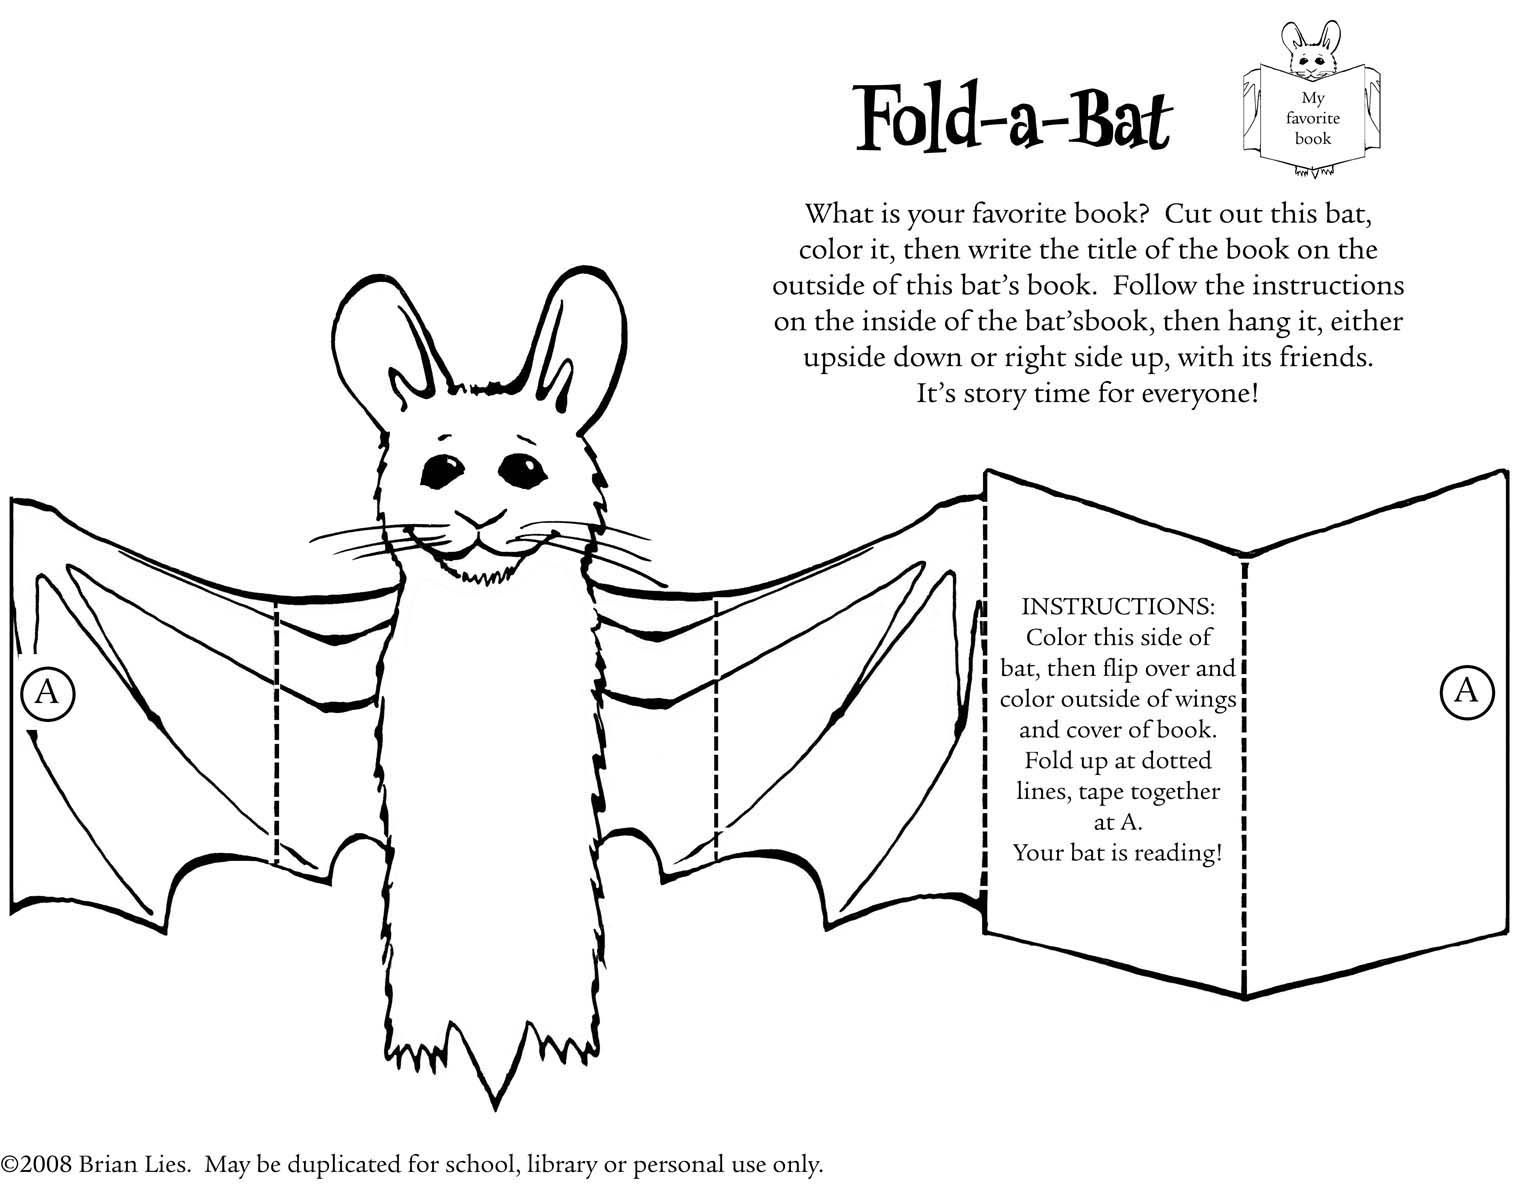 Fold Reading Bat Jpg 1514 1188 Library Activities Library